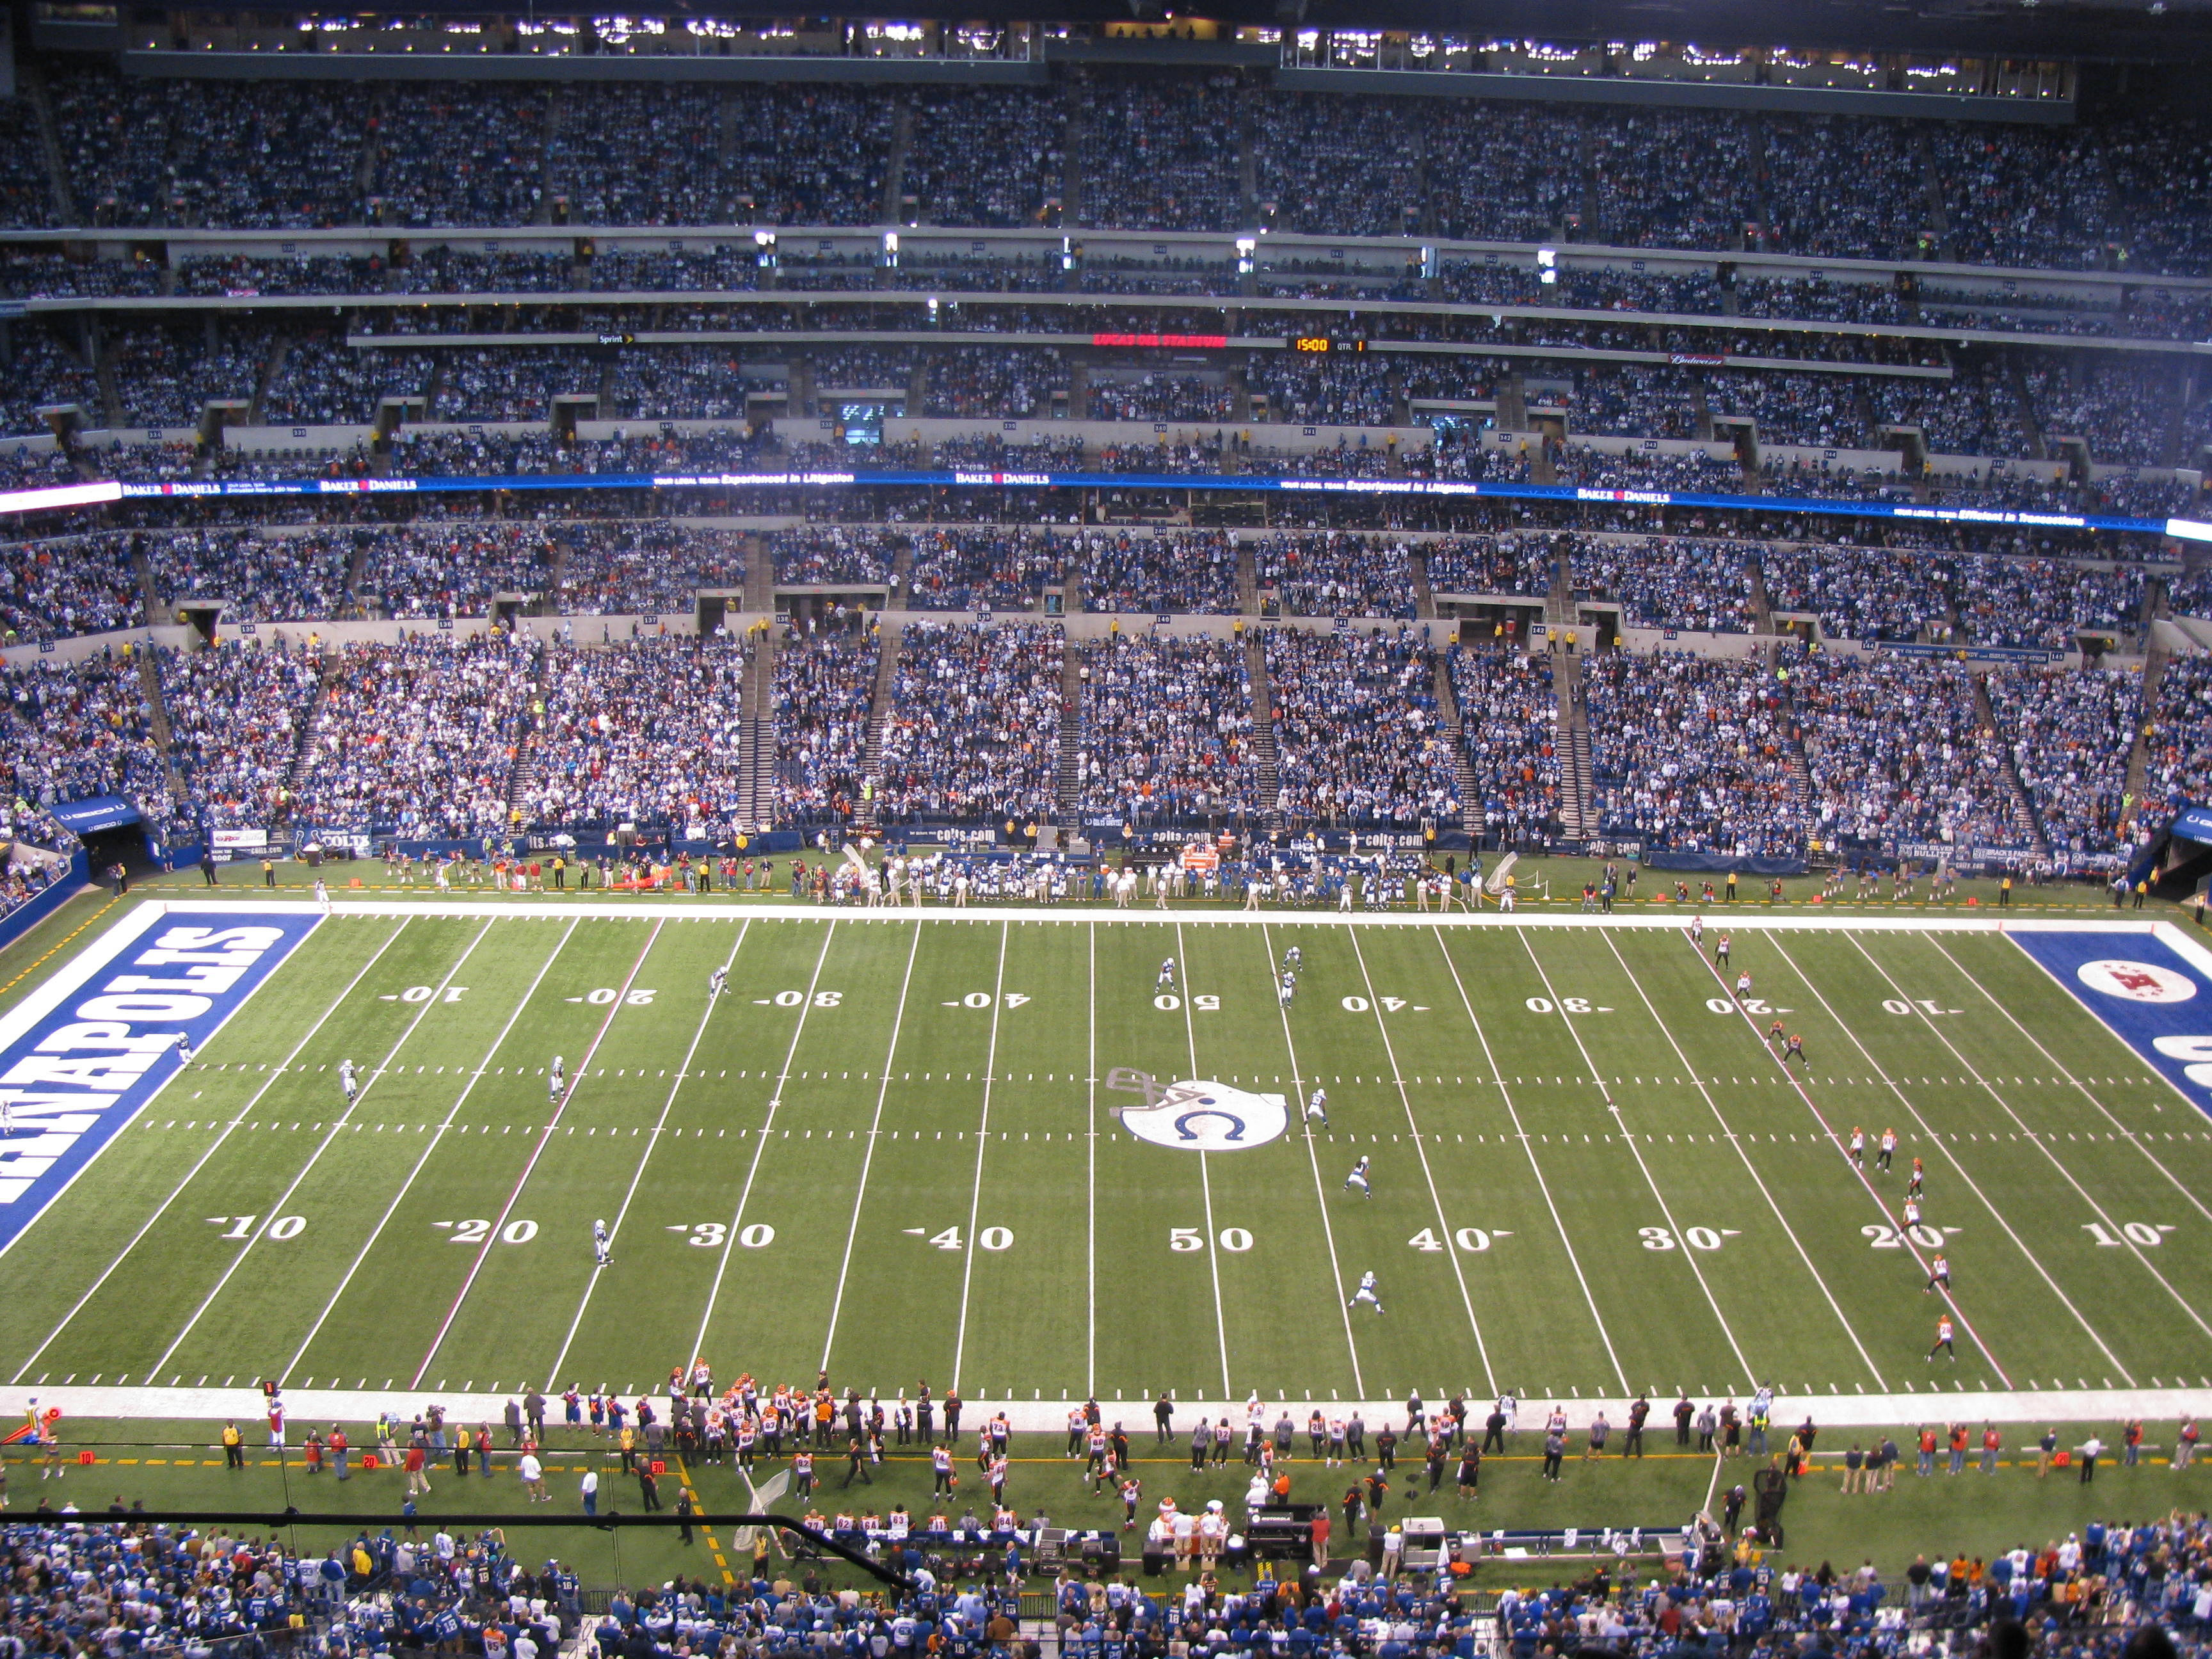 Indianapolis Colts | BECK'S STADIUM PIZZA BLOG